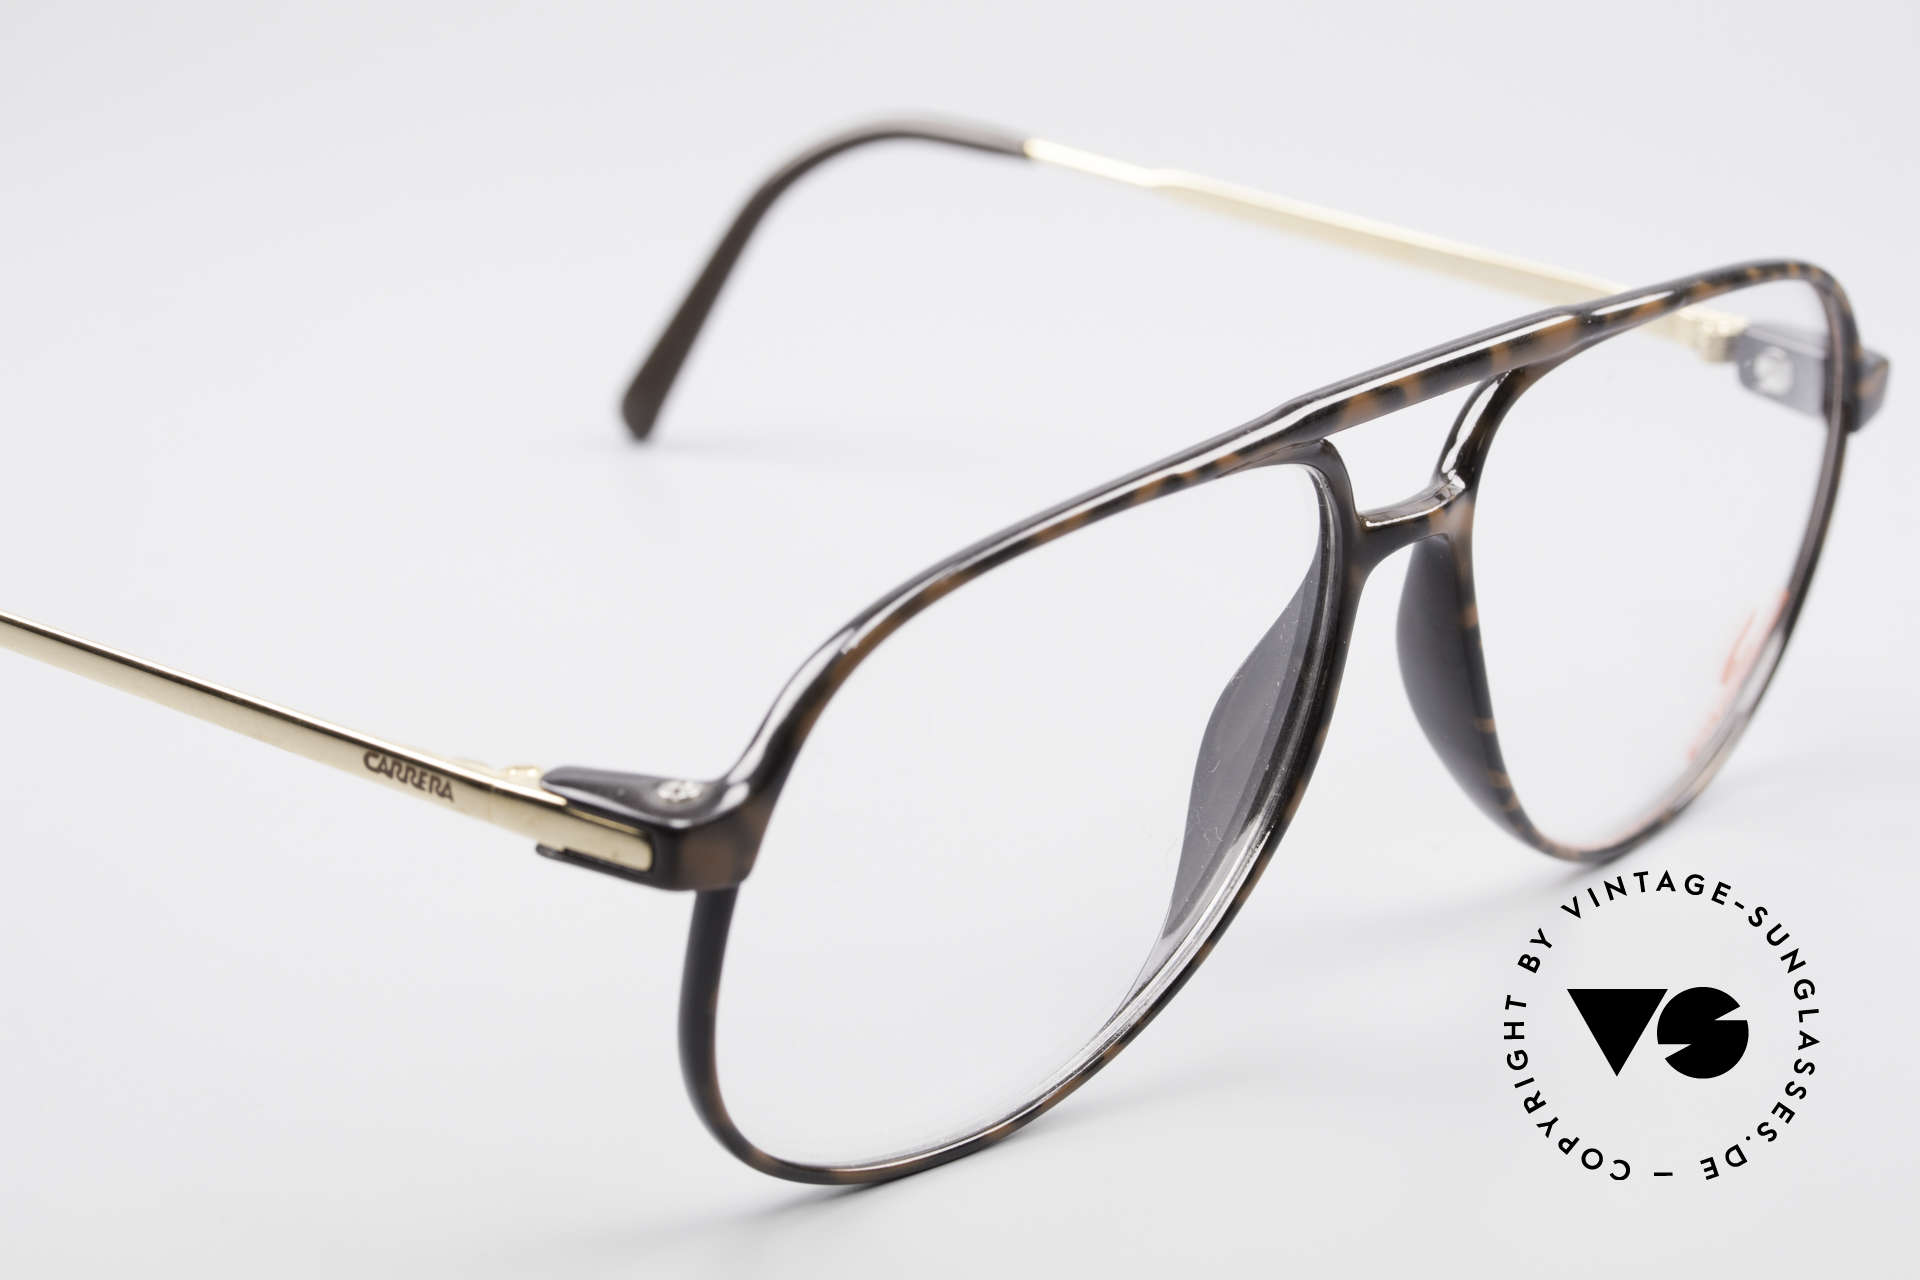 Carrera 5355 Carbon Fibre Vintage Frame, noble coloring / pattern in a kind of 'coffee brown', Made for Men